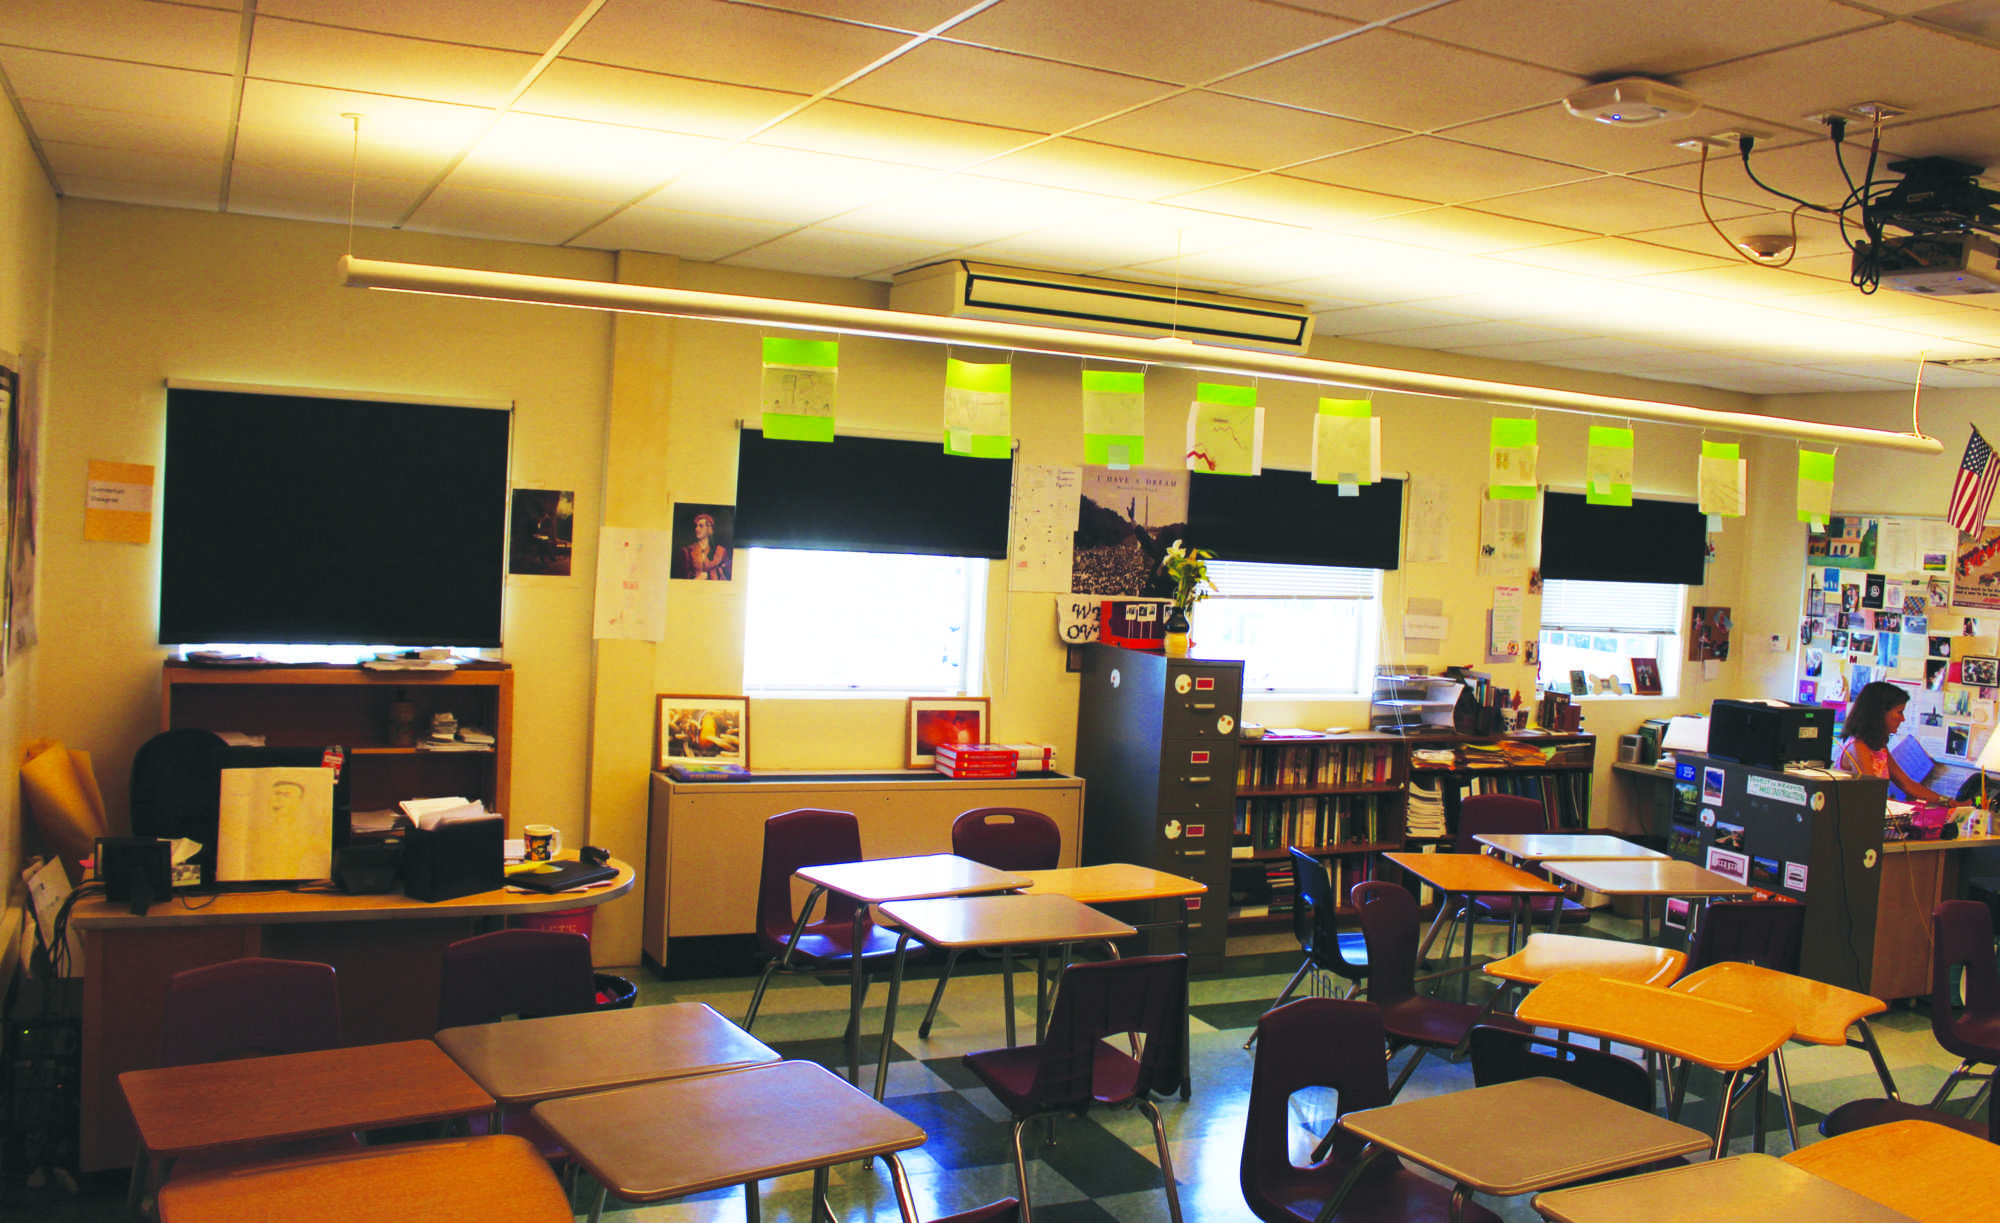 Classroom Layouts Pros And Cons ~ Increased classroom sharing has its pros and cons the